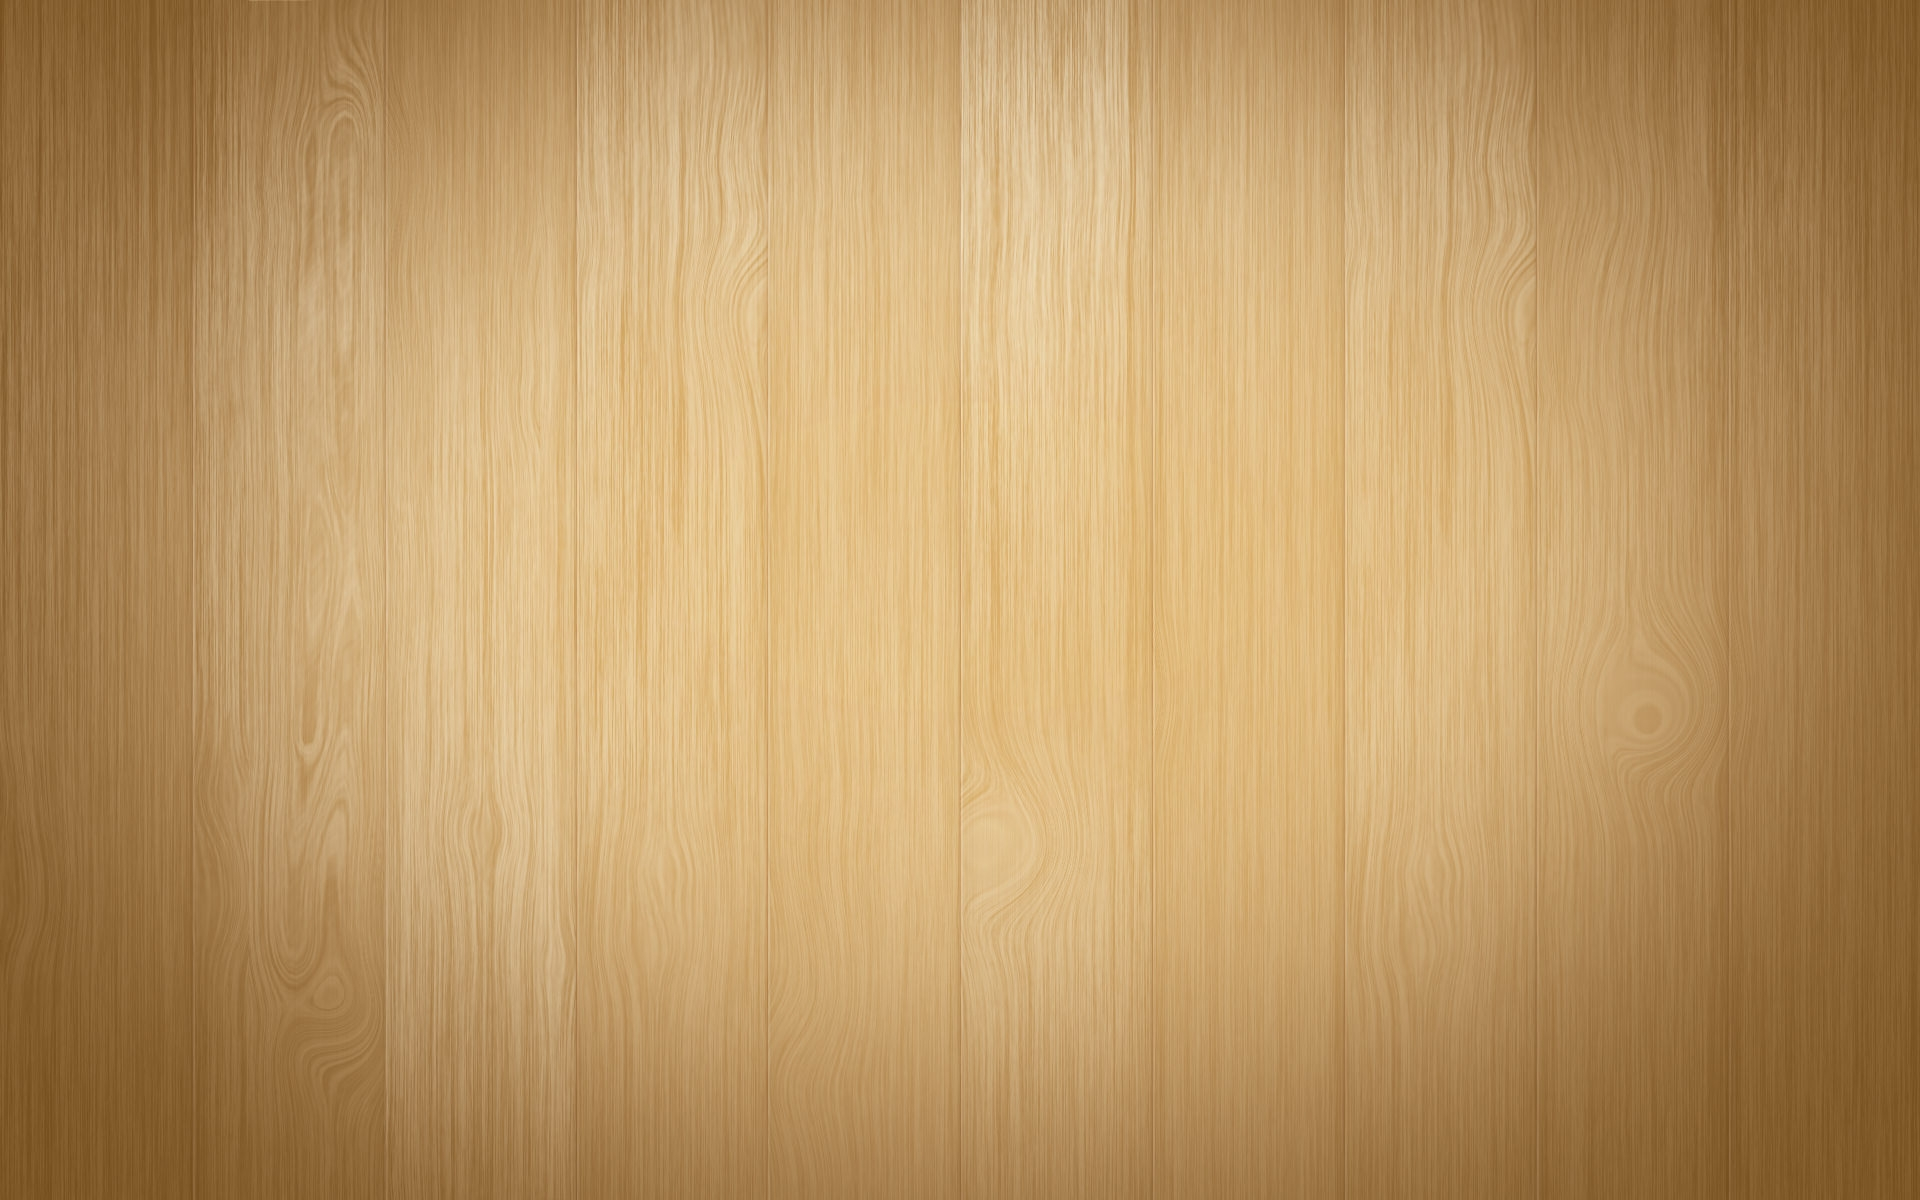 High Quality Wood Plank Background